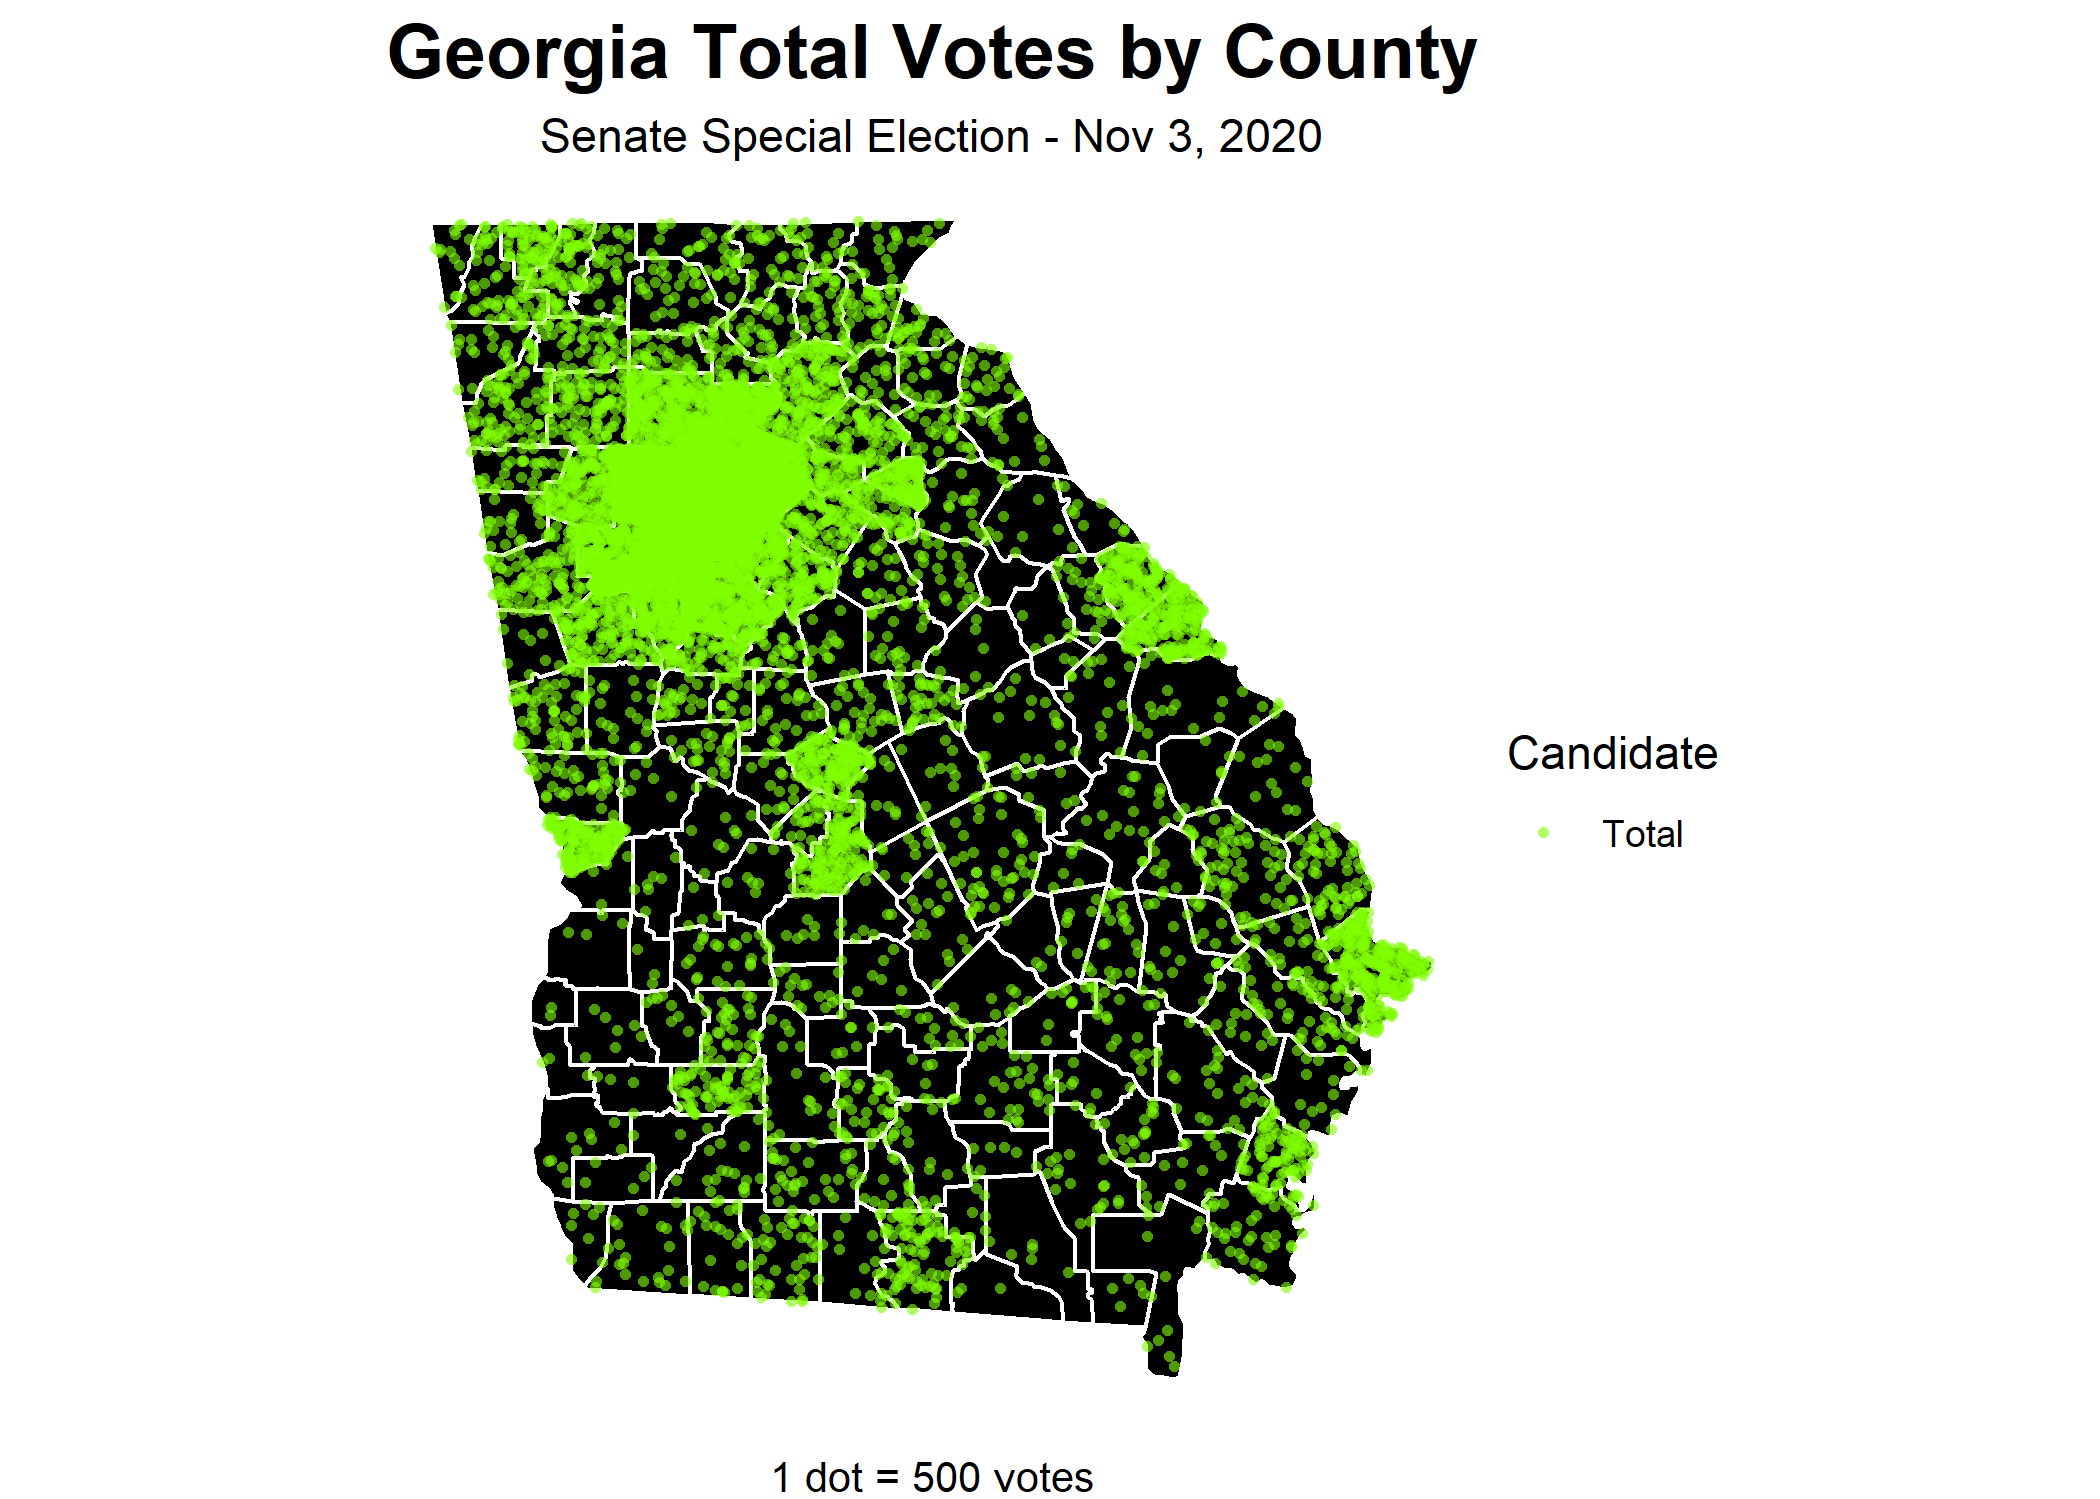 Georgia's total votes by county in the 3 Nov 2020 Senate Special Election—1 dot equals 500 votes